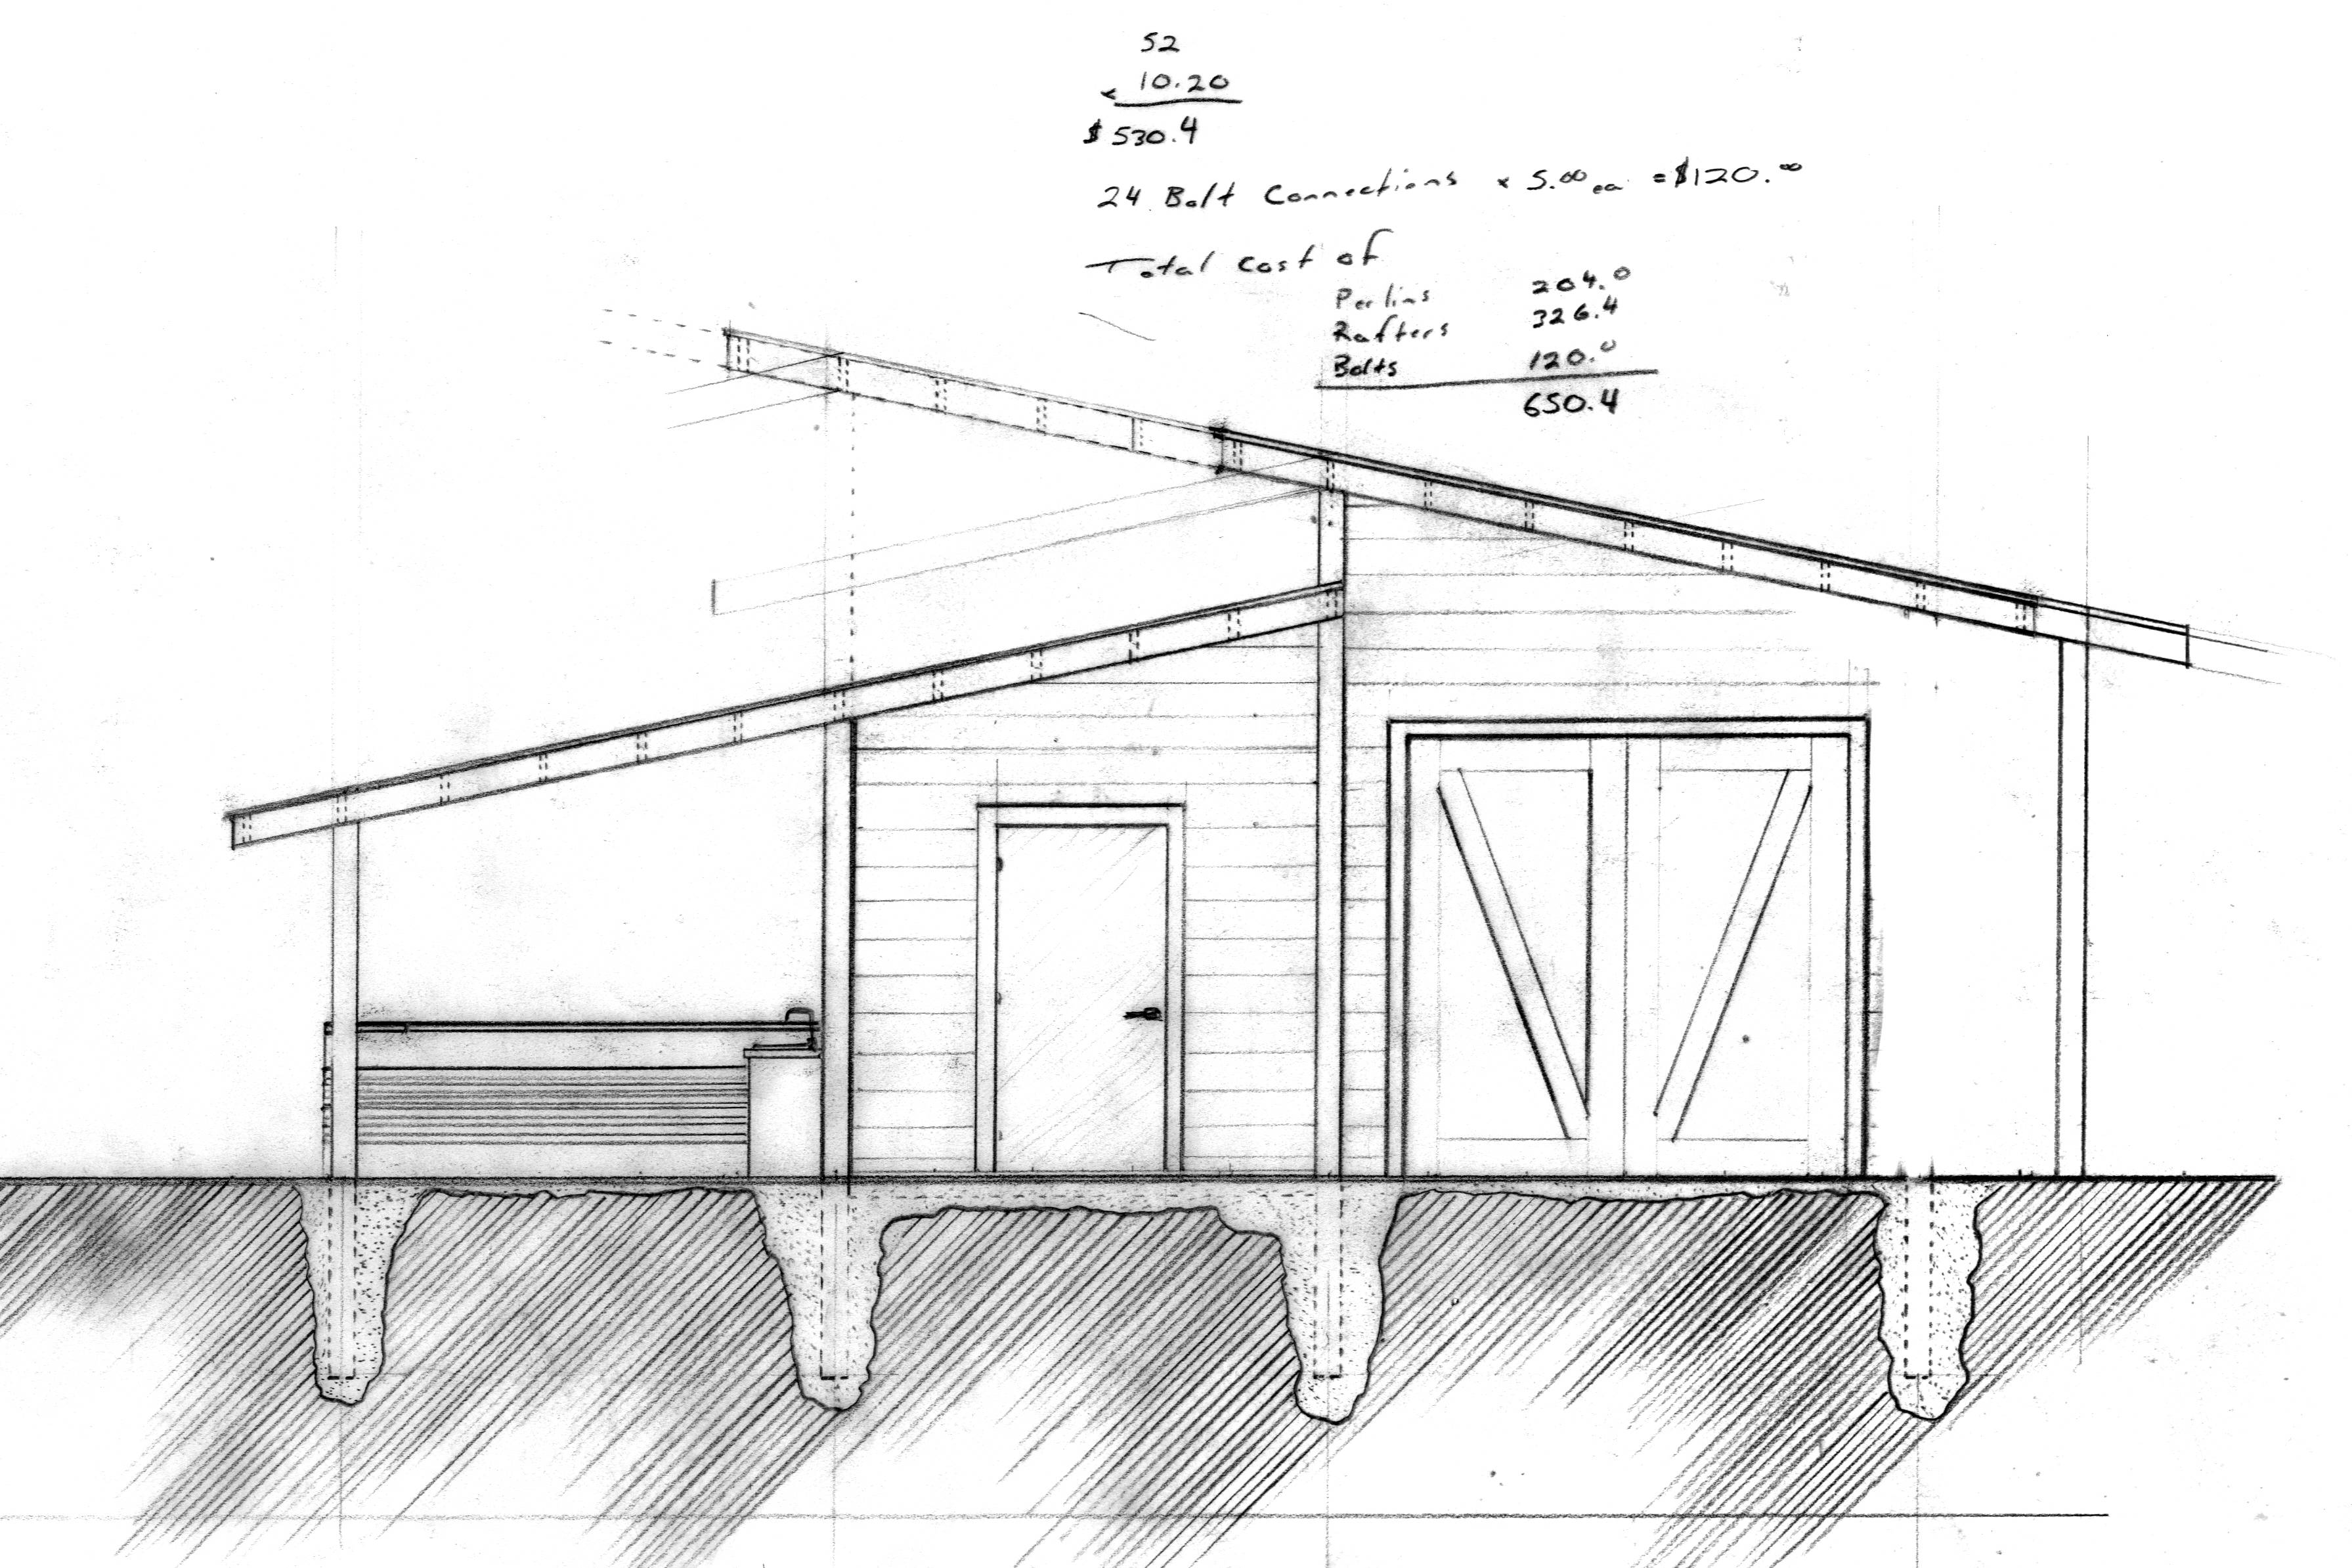 ^ Interlocking Shed oofs Longitudinal - House Plans #75144